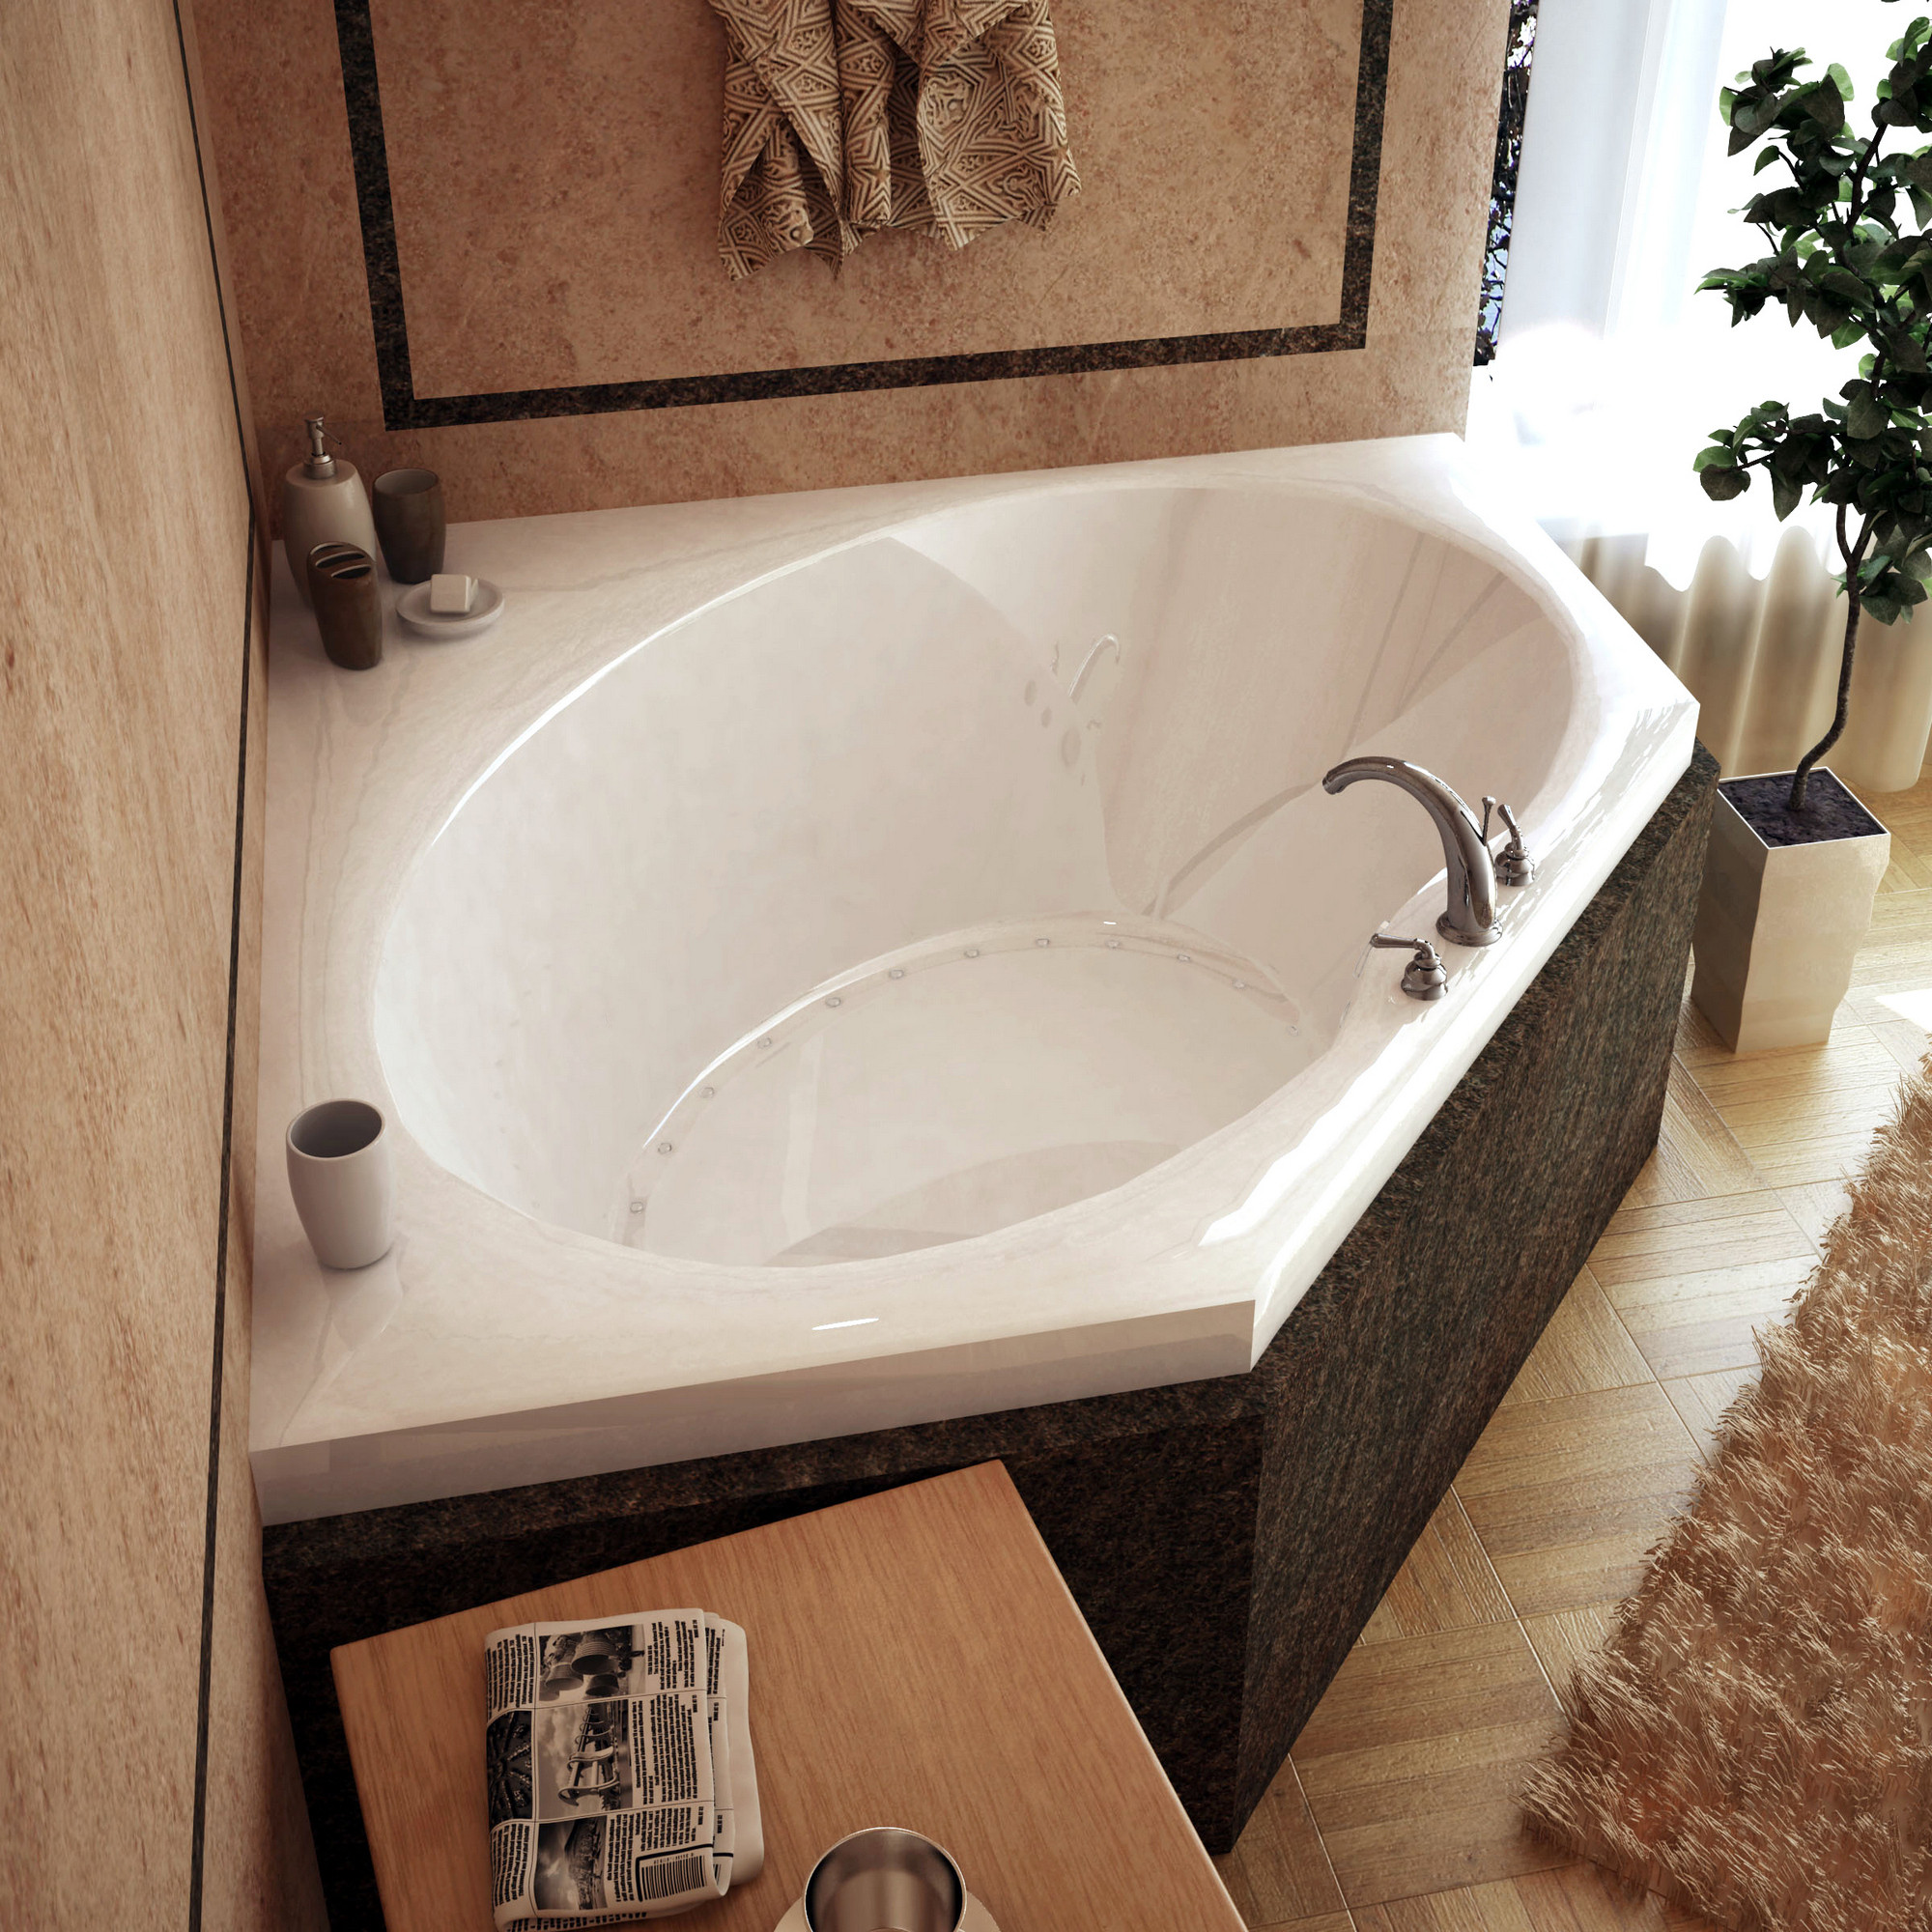 MediTub 6060VAL Atlantis Venus Corner Air Jetted Bathtub With Left Blower